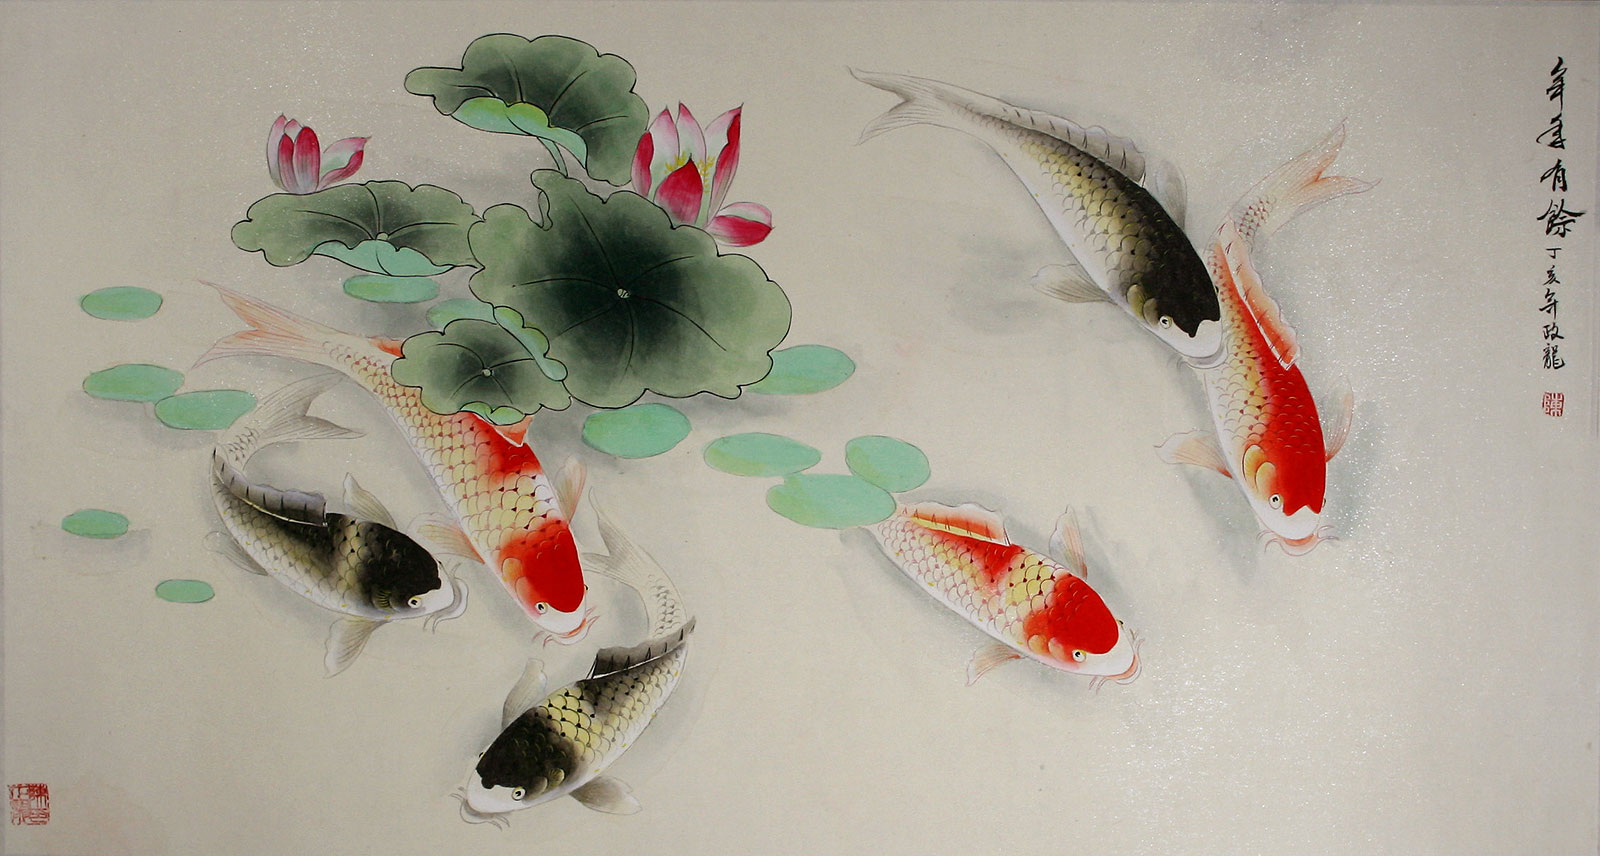 Chinese koi fish watercolor artwork asian koi fish paintings wall scrolls chinese artwork for Chinese coy fish